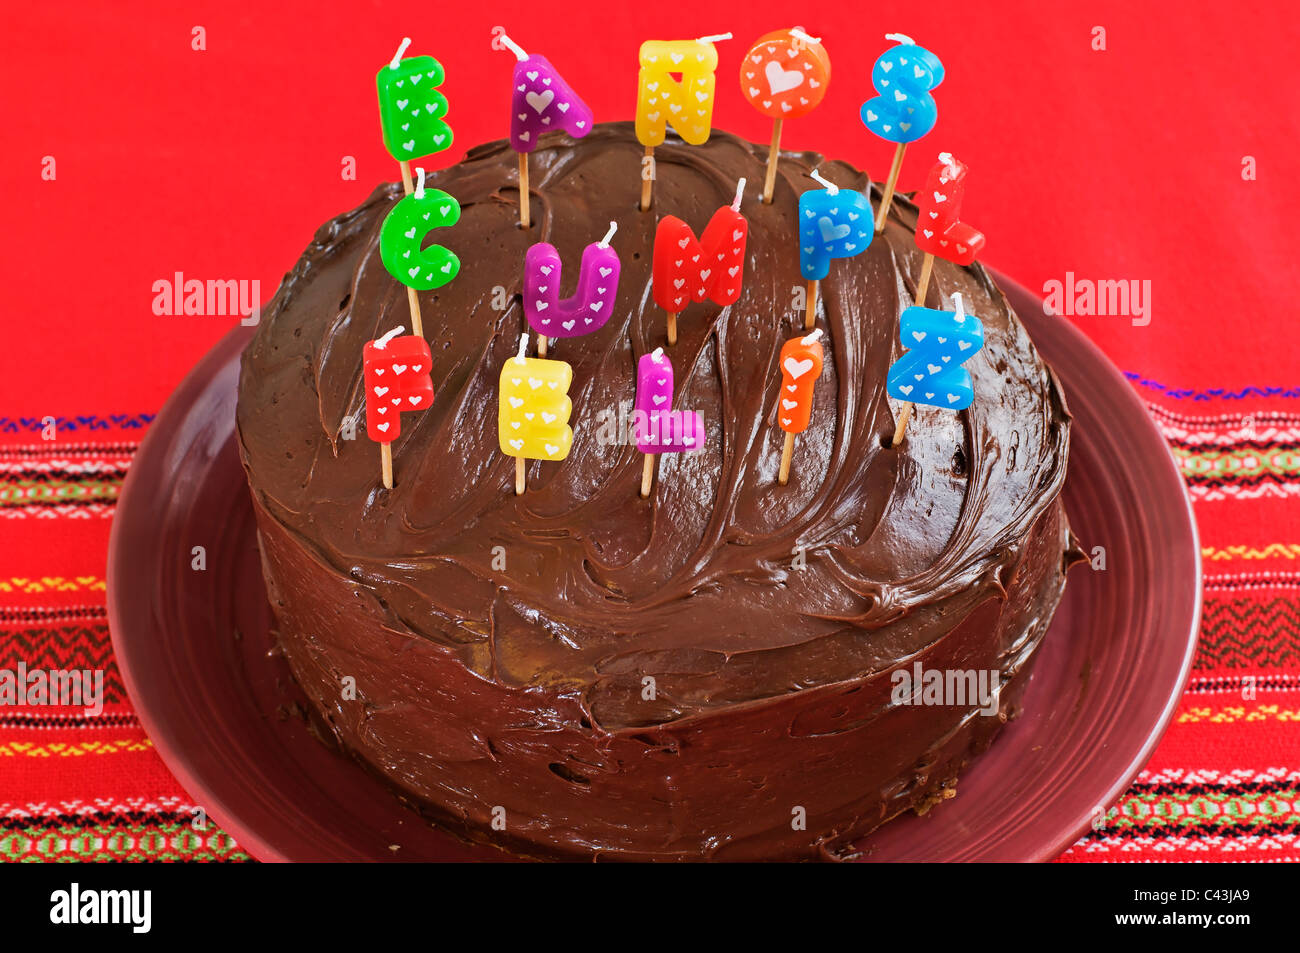 Layered birthday cake with chocolate frosting and decorated with ...